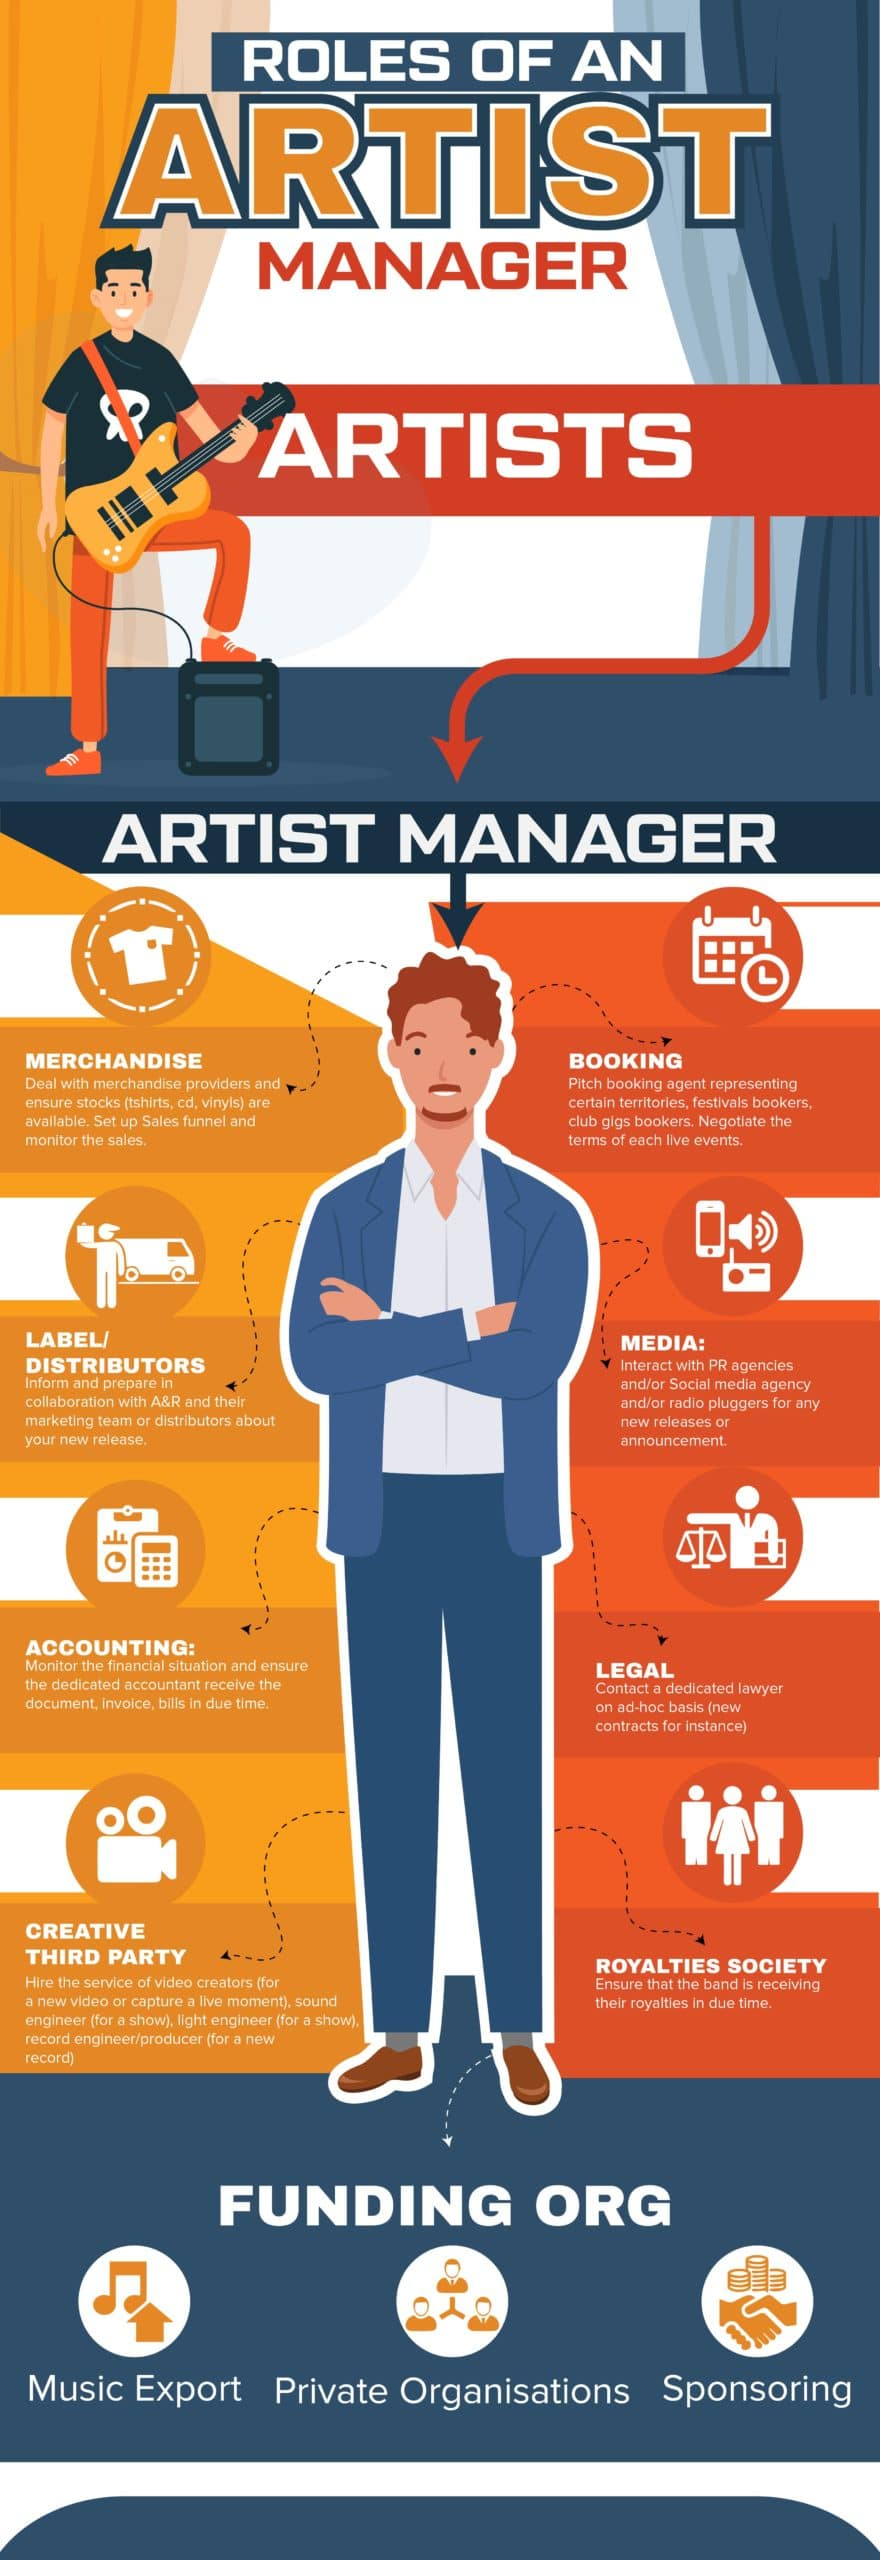 roles of artist manager infographic